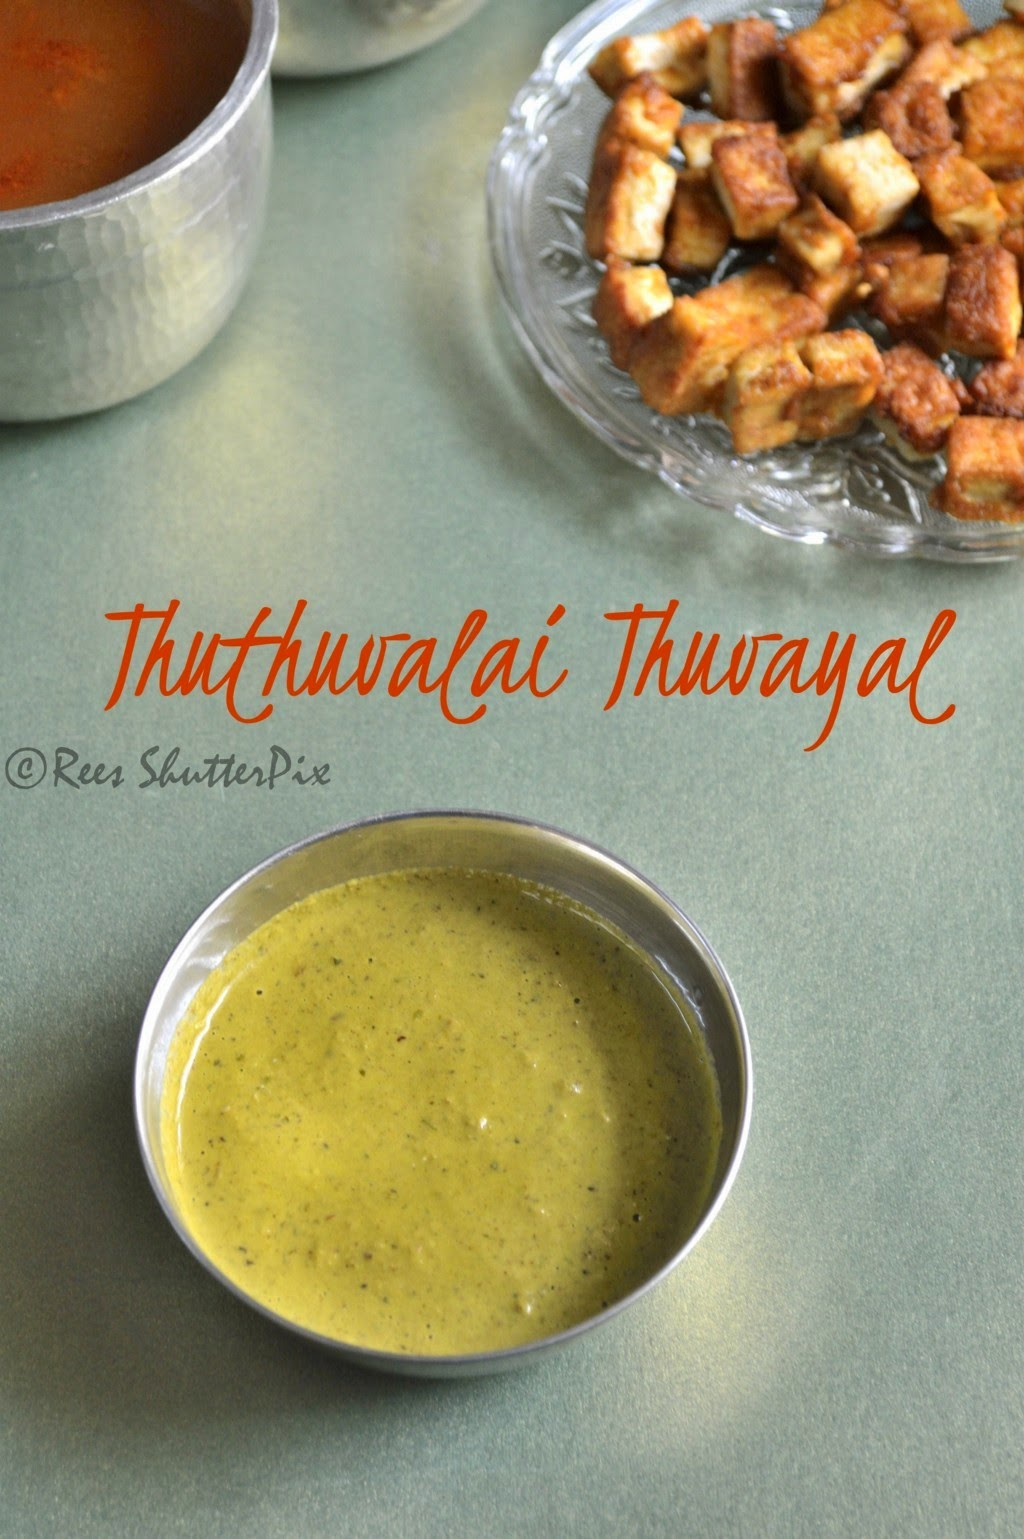 Thuthuvalai Thogayal Recipe | Solanum Trilobatum Thogayal Recipe , thuthuvalai thovayal fro cold and cough recipe, cough medicine recipe, thoodhuvalai recipes,